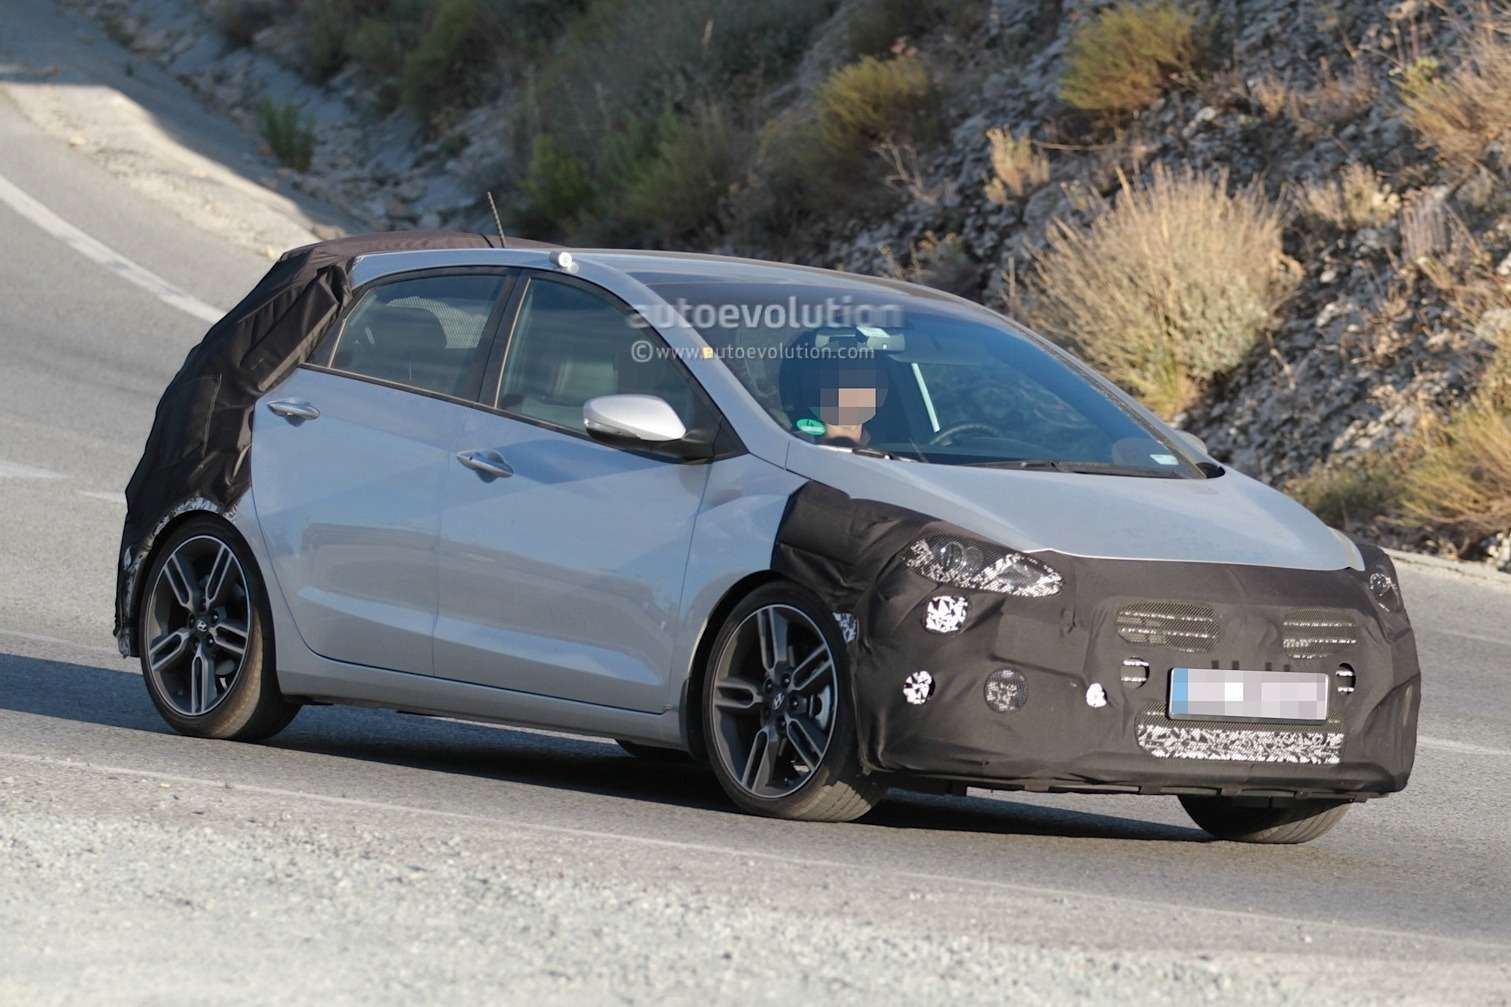 spyshots-hyundai-i30-n-hot-hatch-seen-for-the-first-time_3